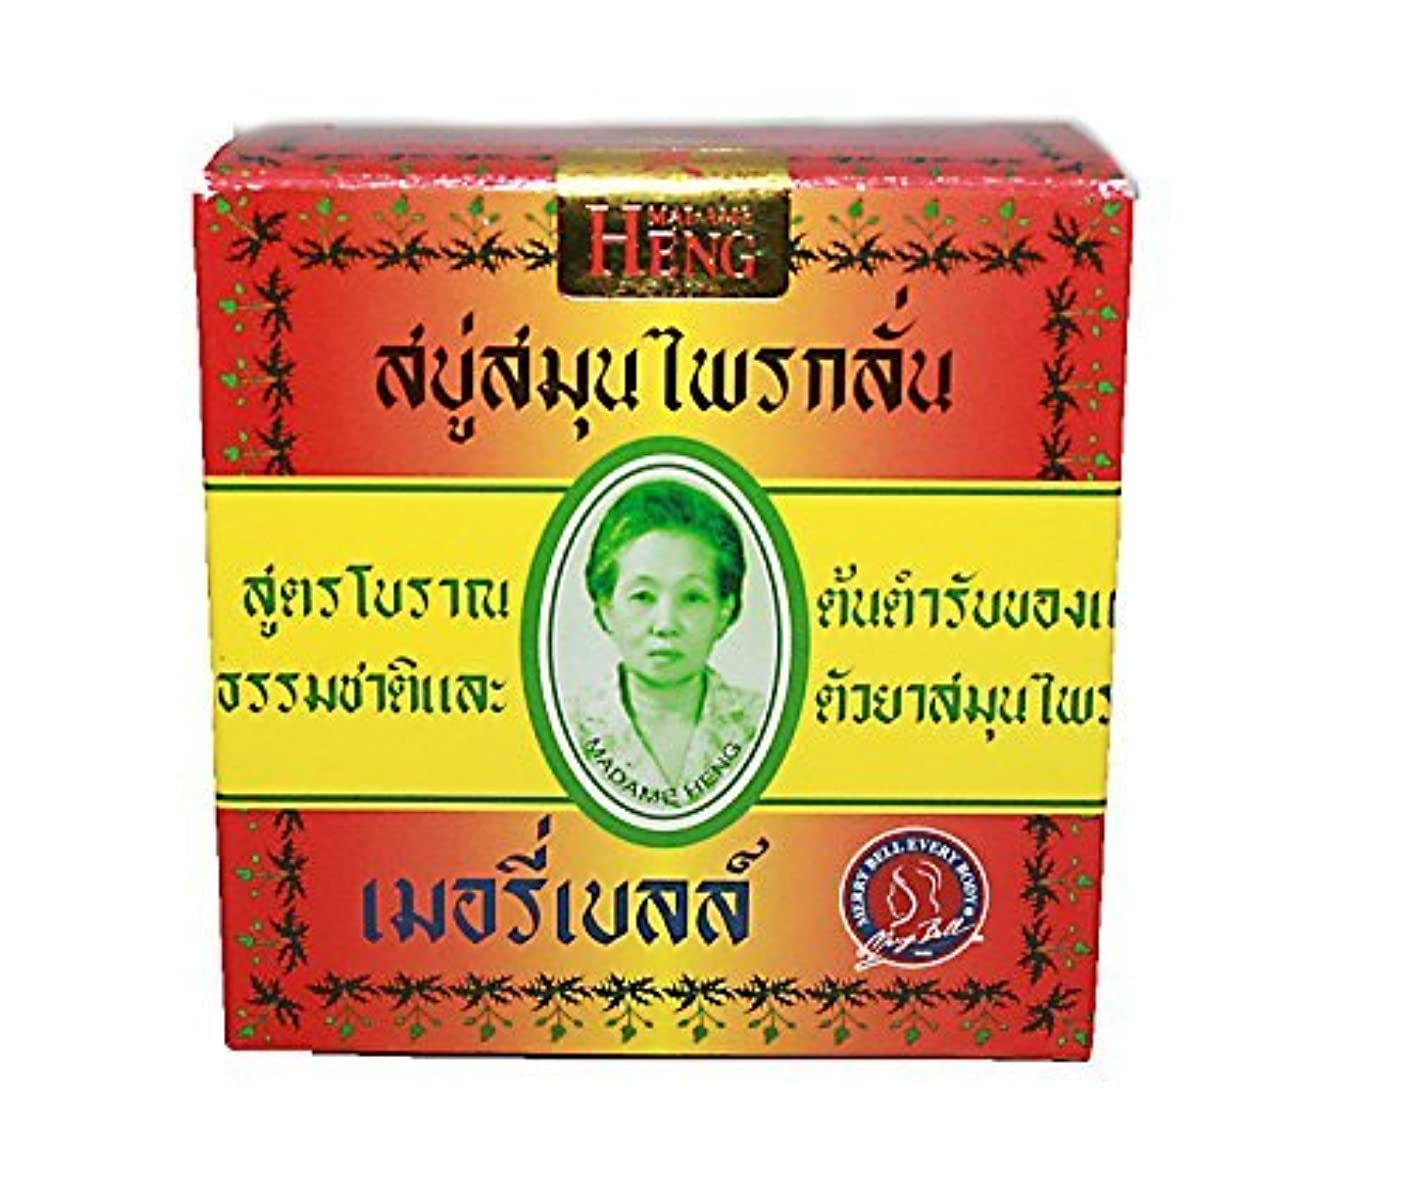 バーストオーバーヘッドシーズンMADAME HENG NATURAL SOAP BAR MERRY BELL ORIGINAL THAI (net wt 5.64 OZ.or 160g.) by onefeelgood shop